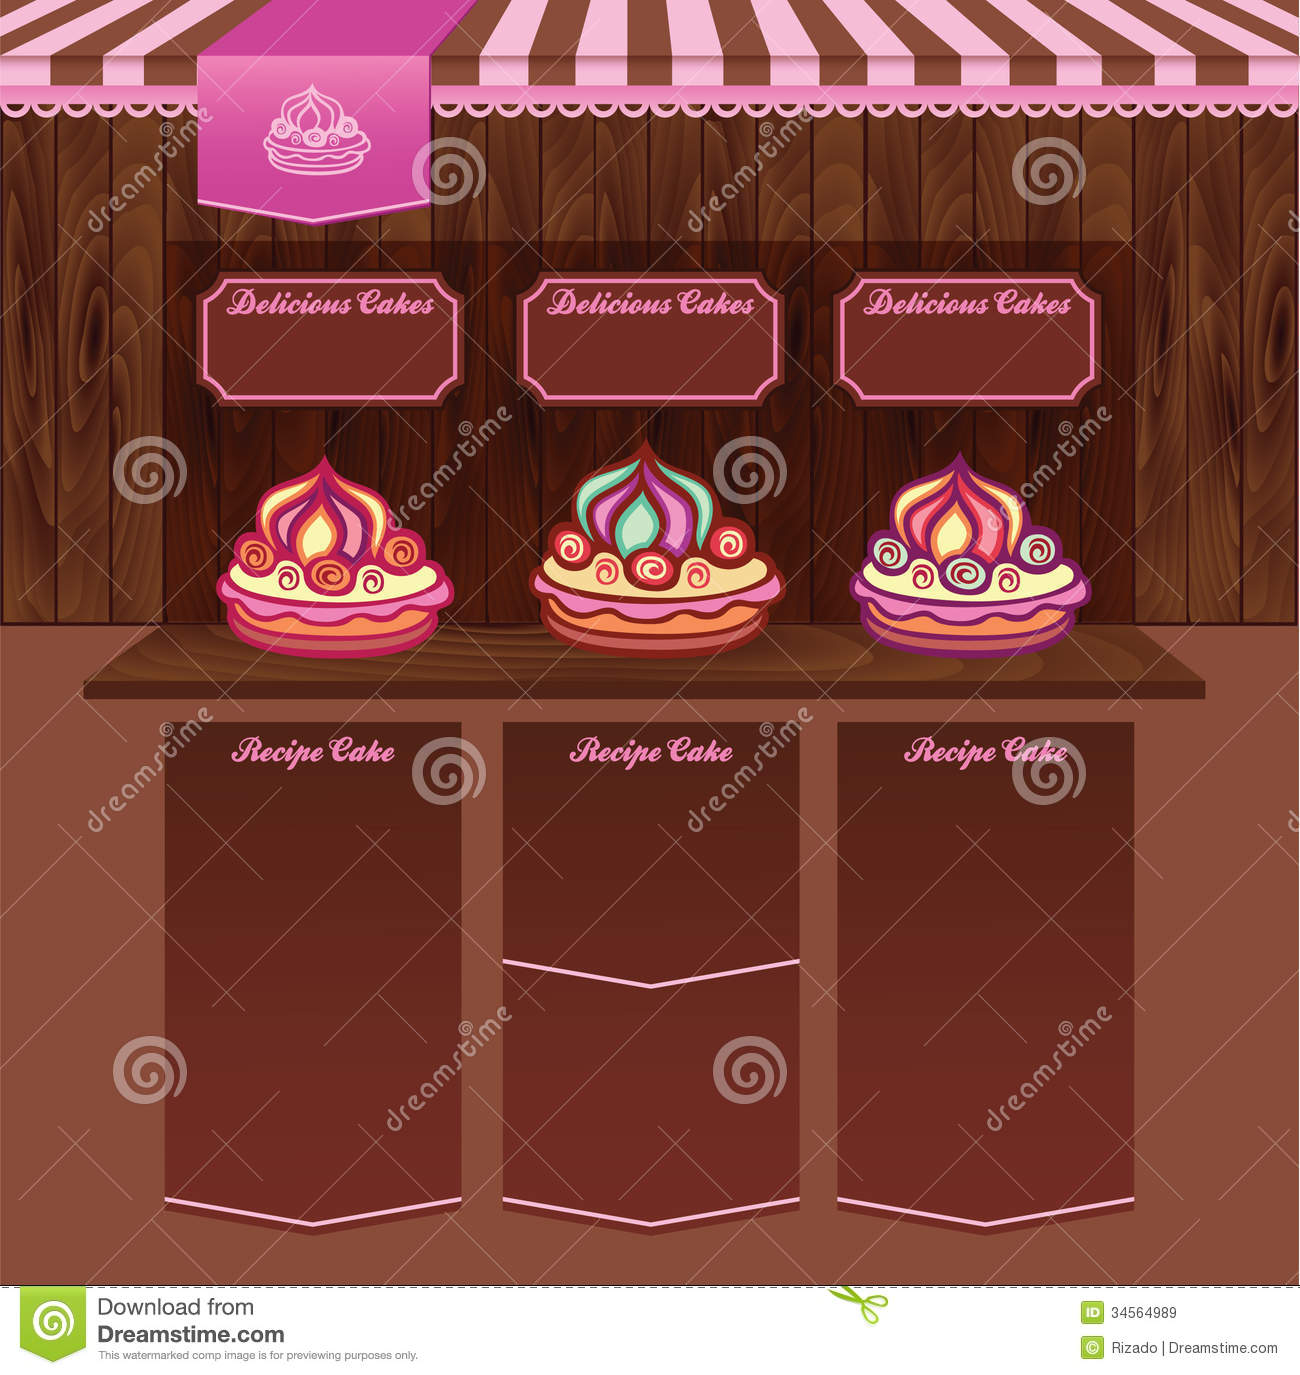 Cake Design Web Templates : Template For Cake Recipes Web Site Royalty Free Stock ...